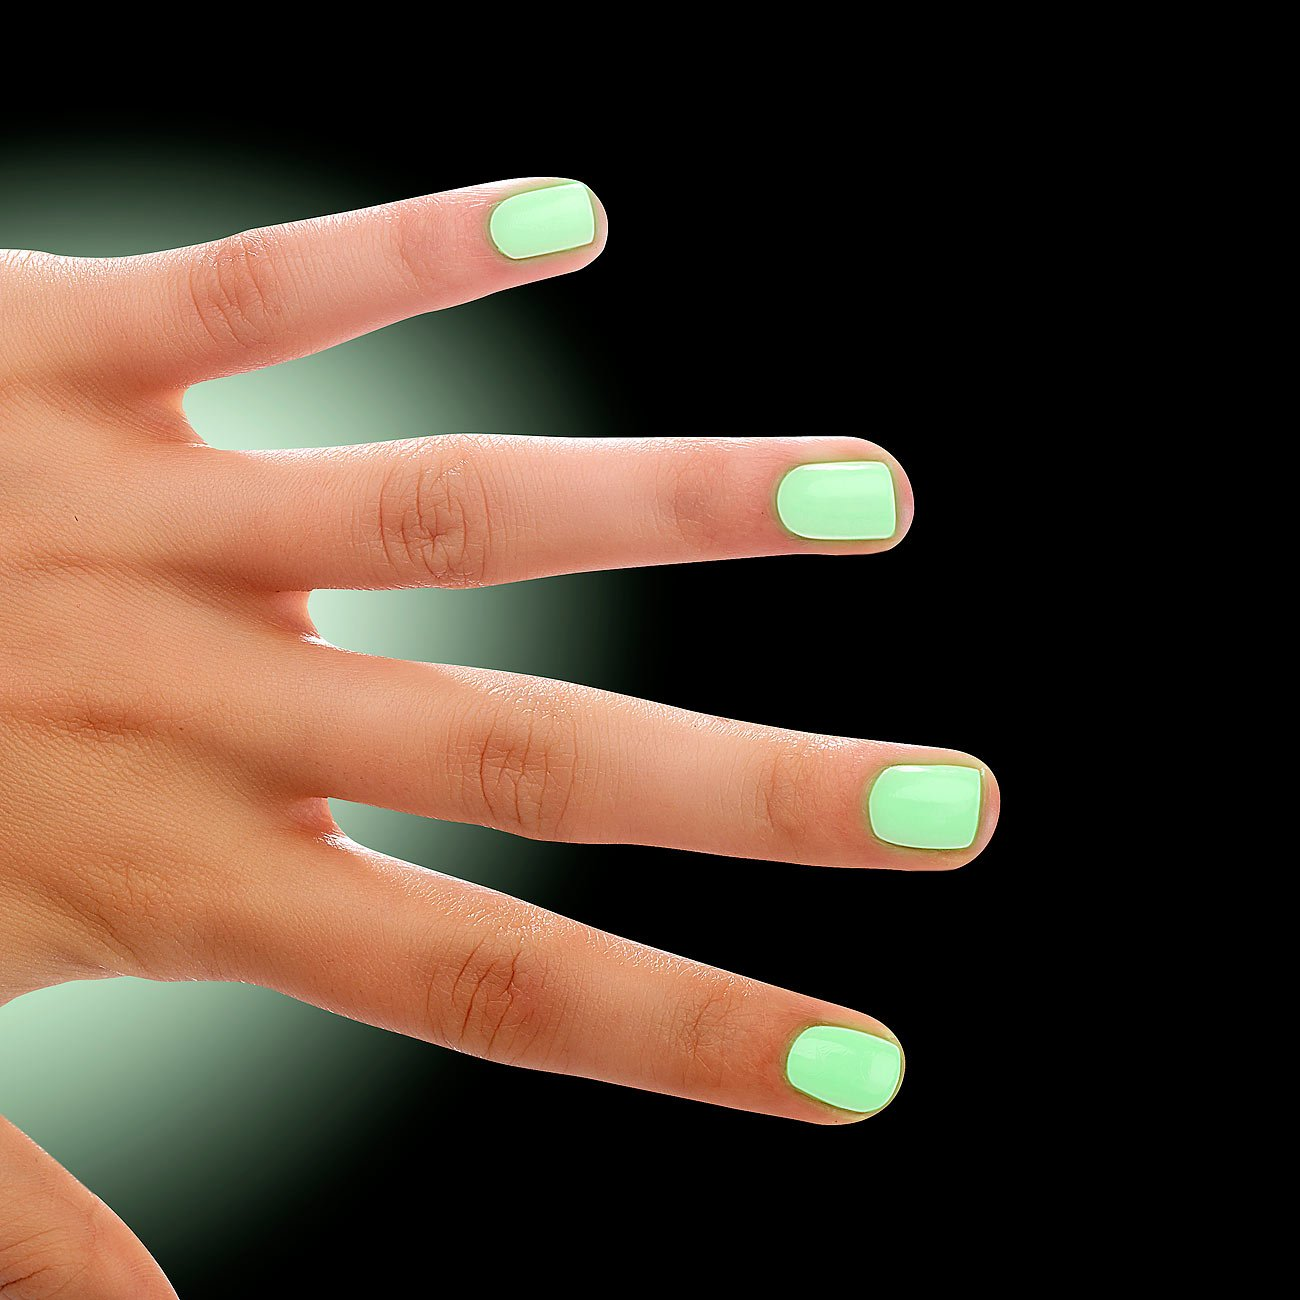 Infactory Blacklight-esmalte de uñas con Glow-in-the-dark-efecto: Amazon.es: Belleza